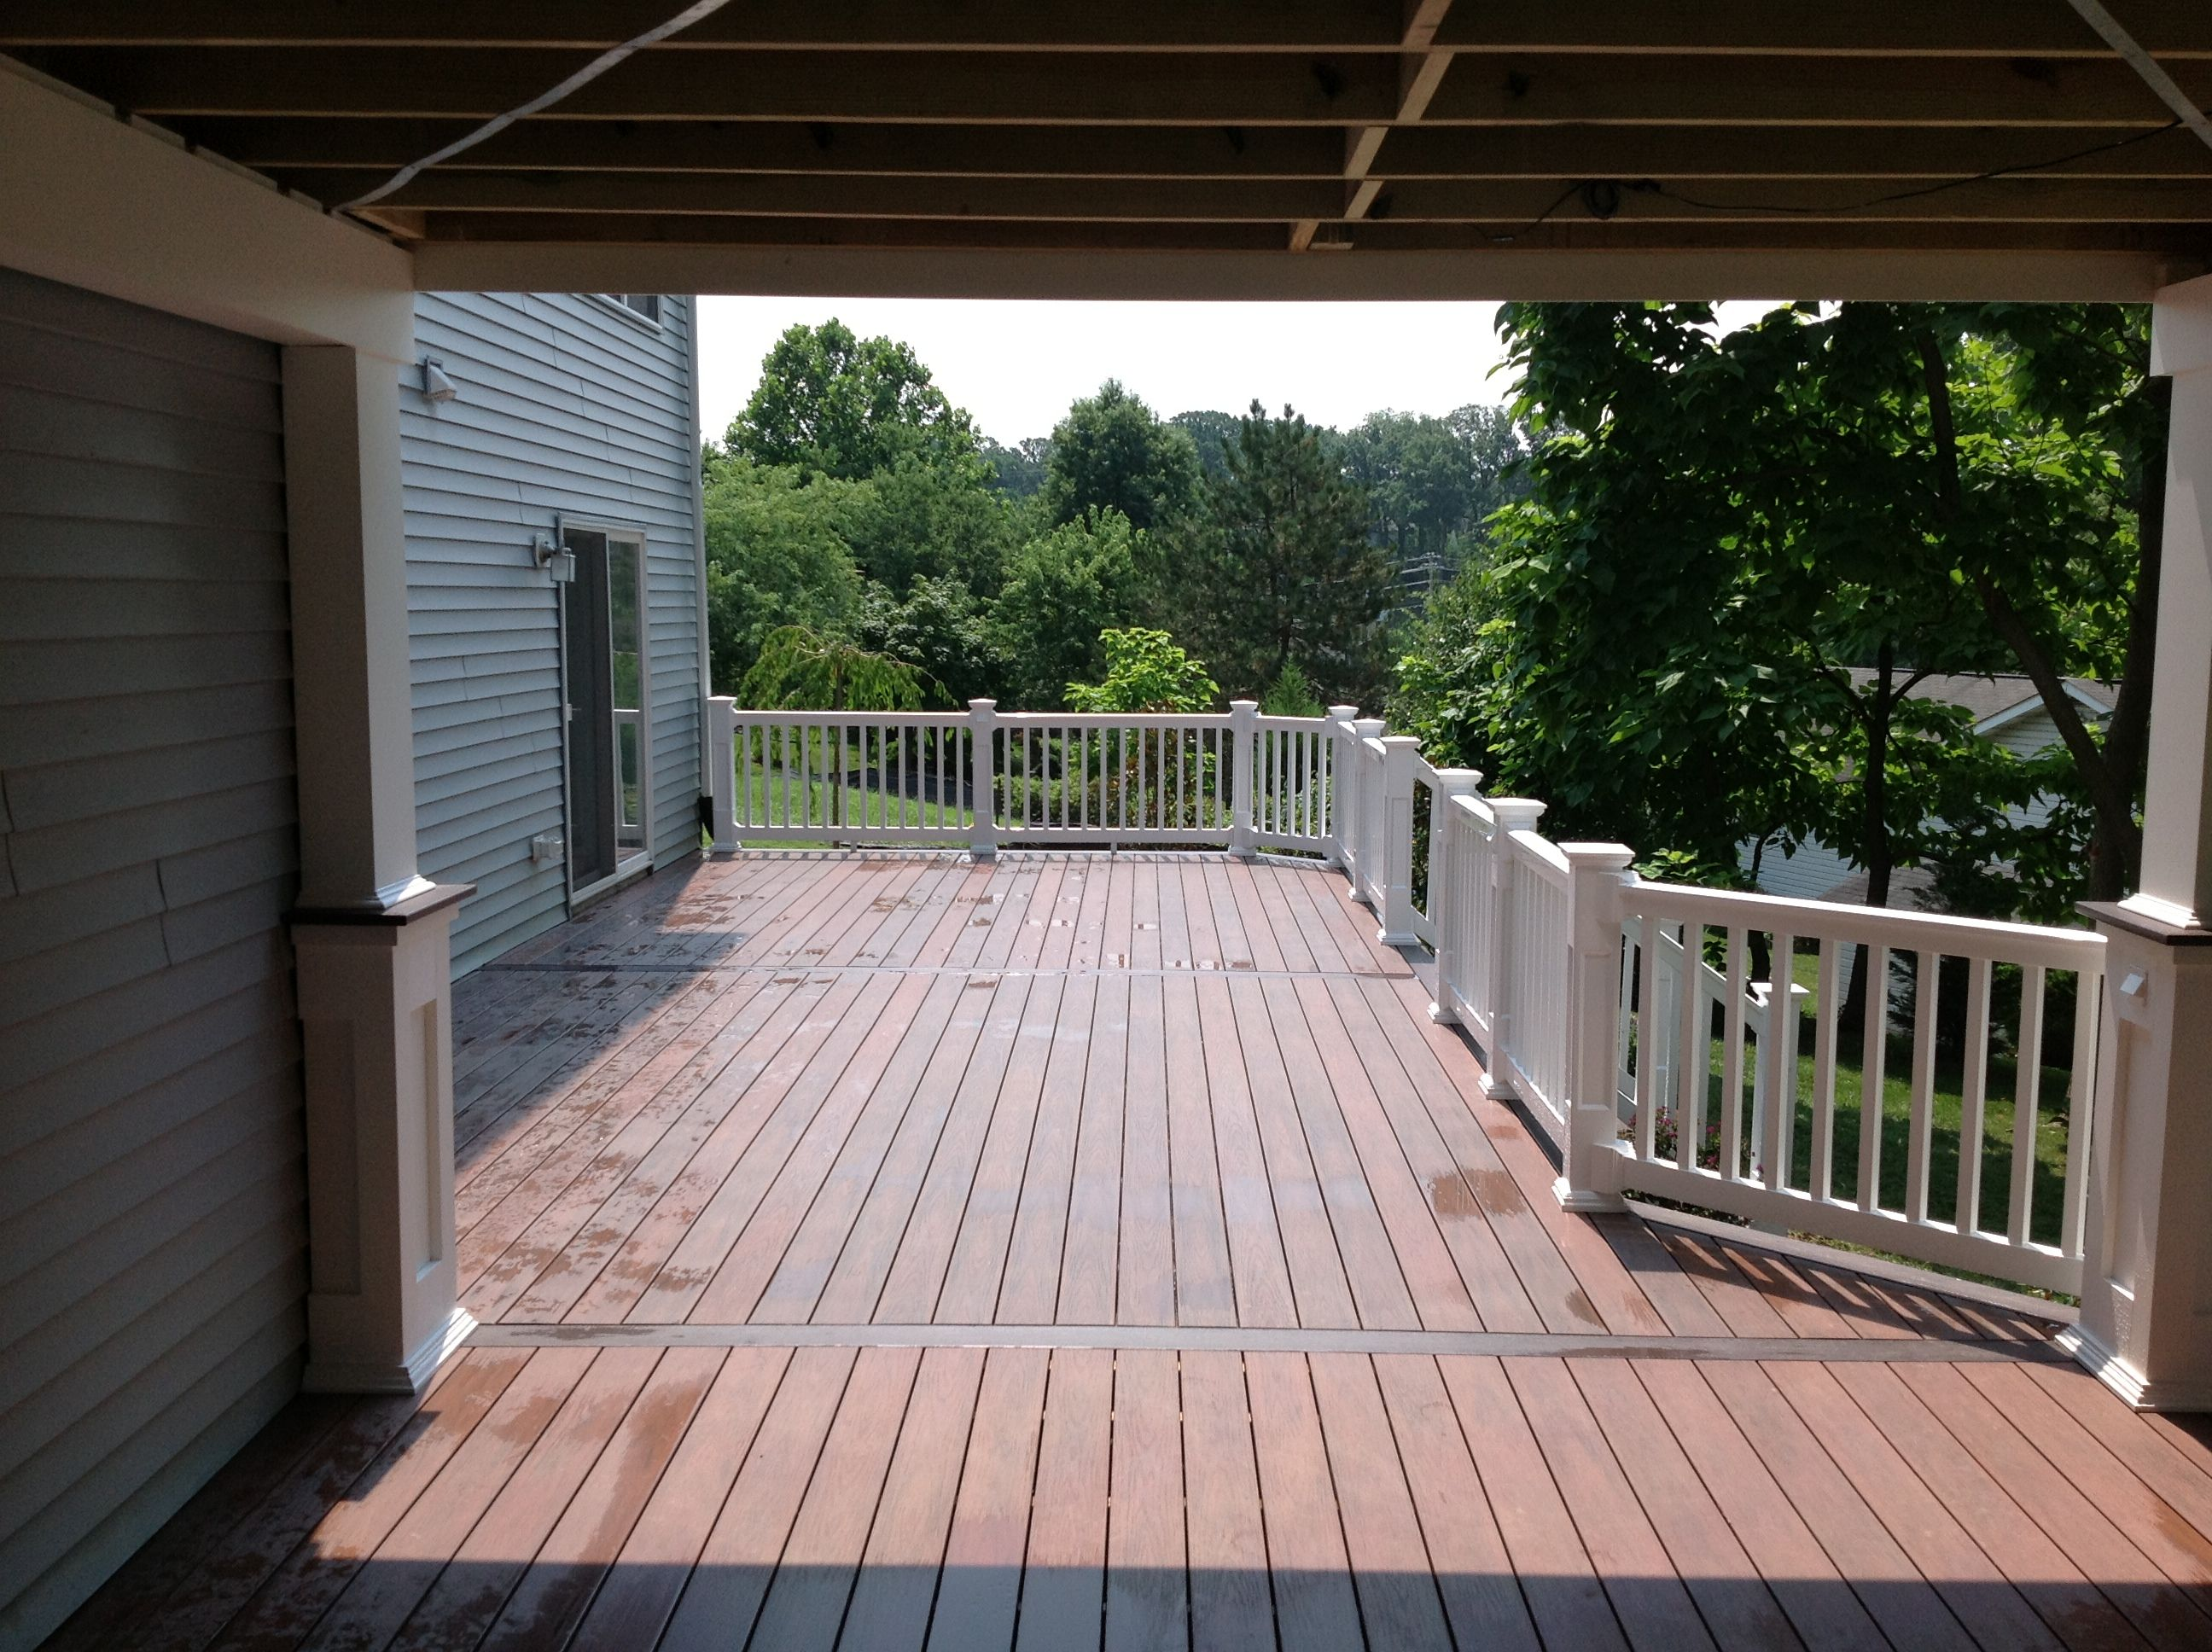 Vinyl Deck With Wolf Pvc Decking Using Amberwood Flooring With